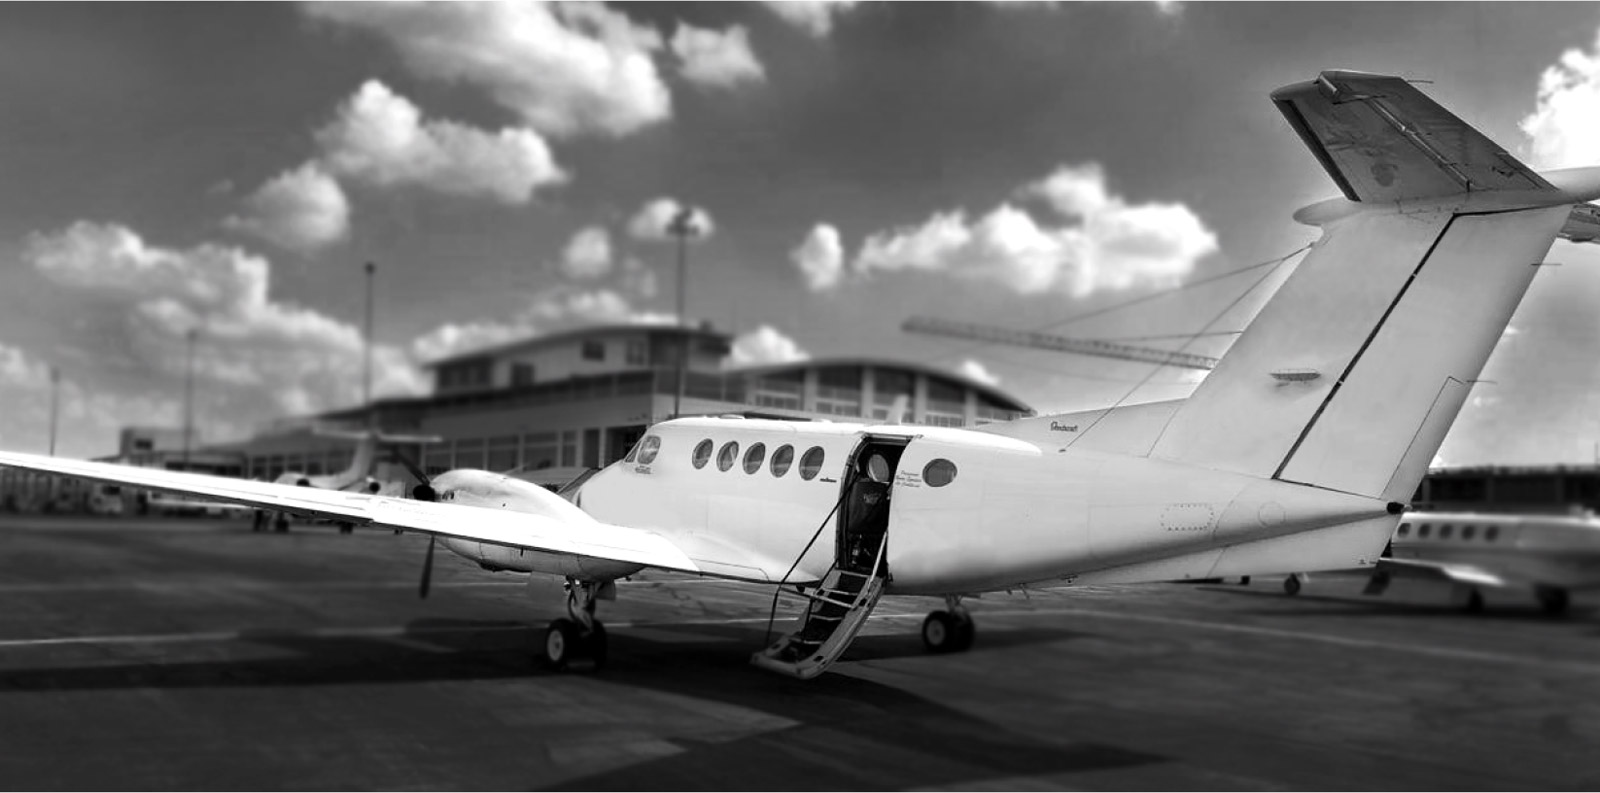 B200 Kind Air Aircraft